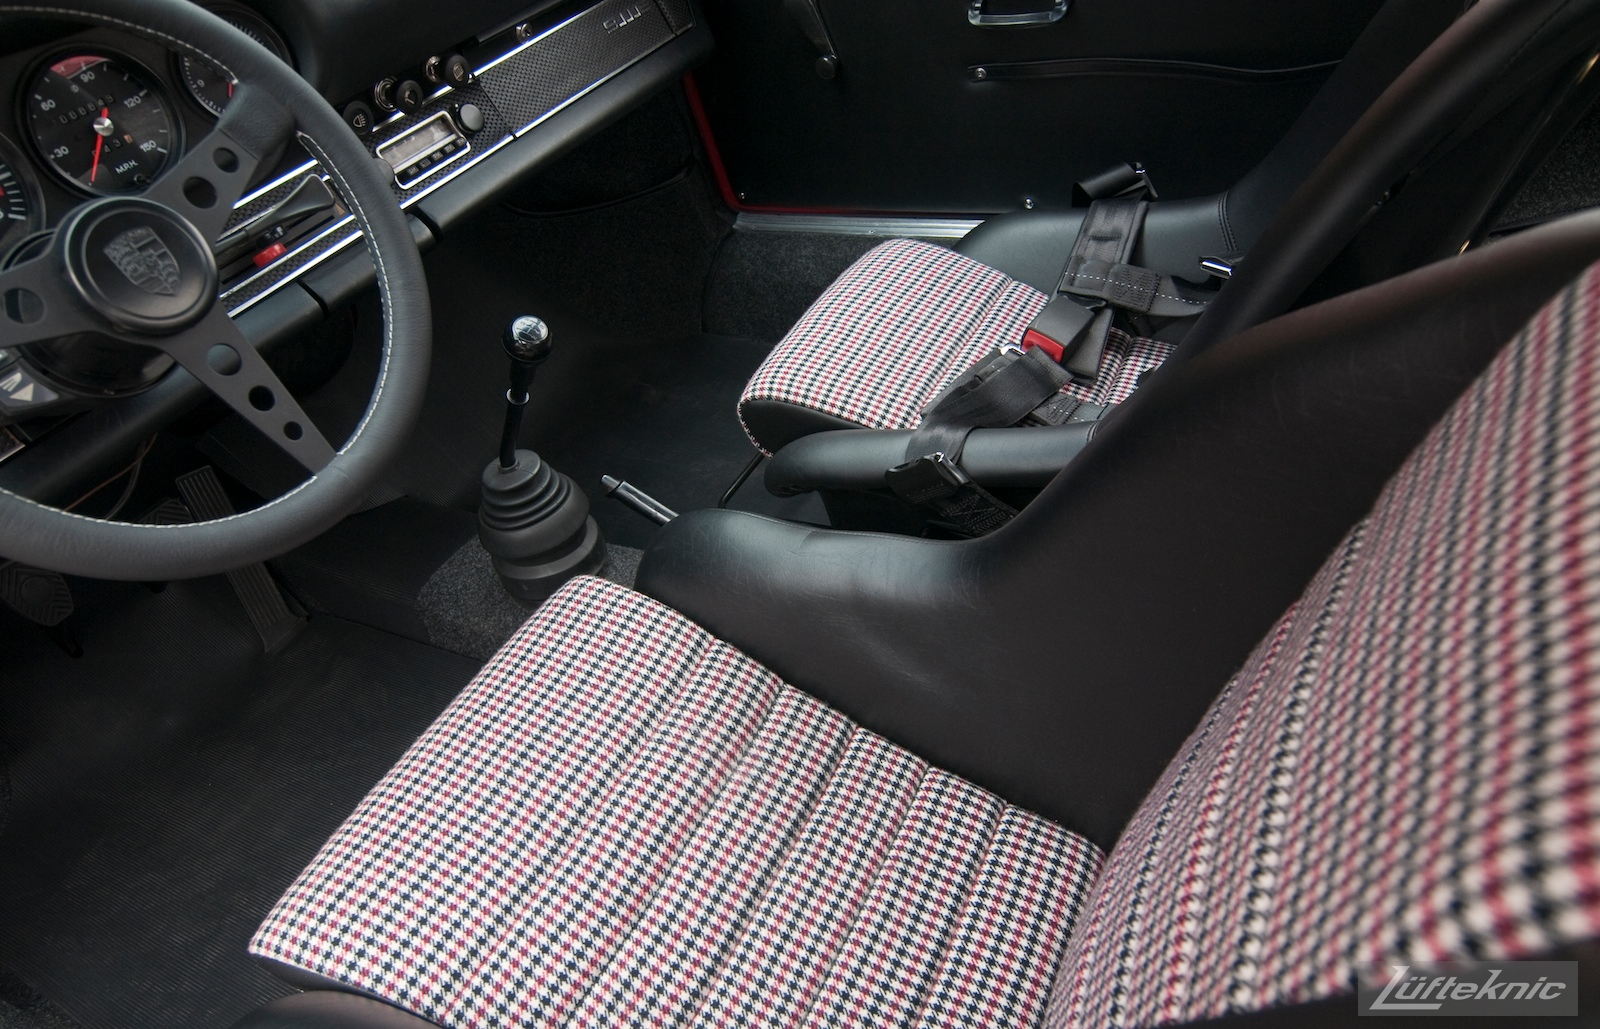 Porsche sport bucket seats with houndstooth pattern